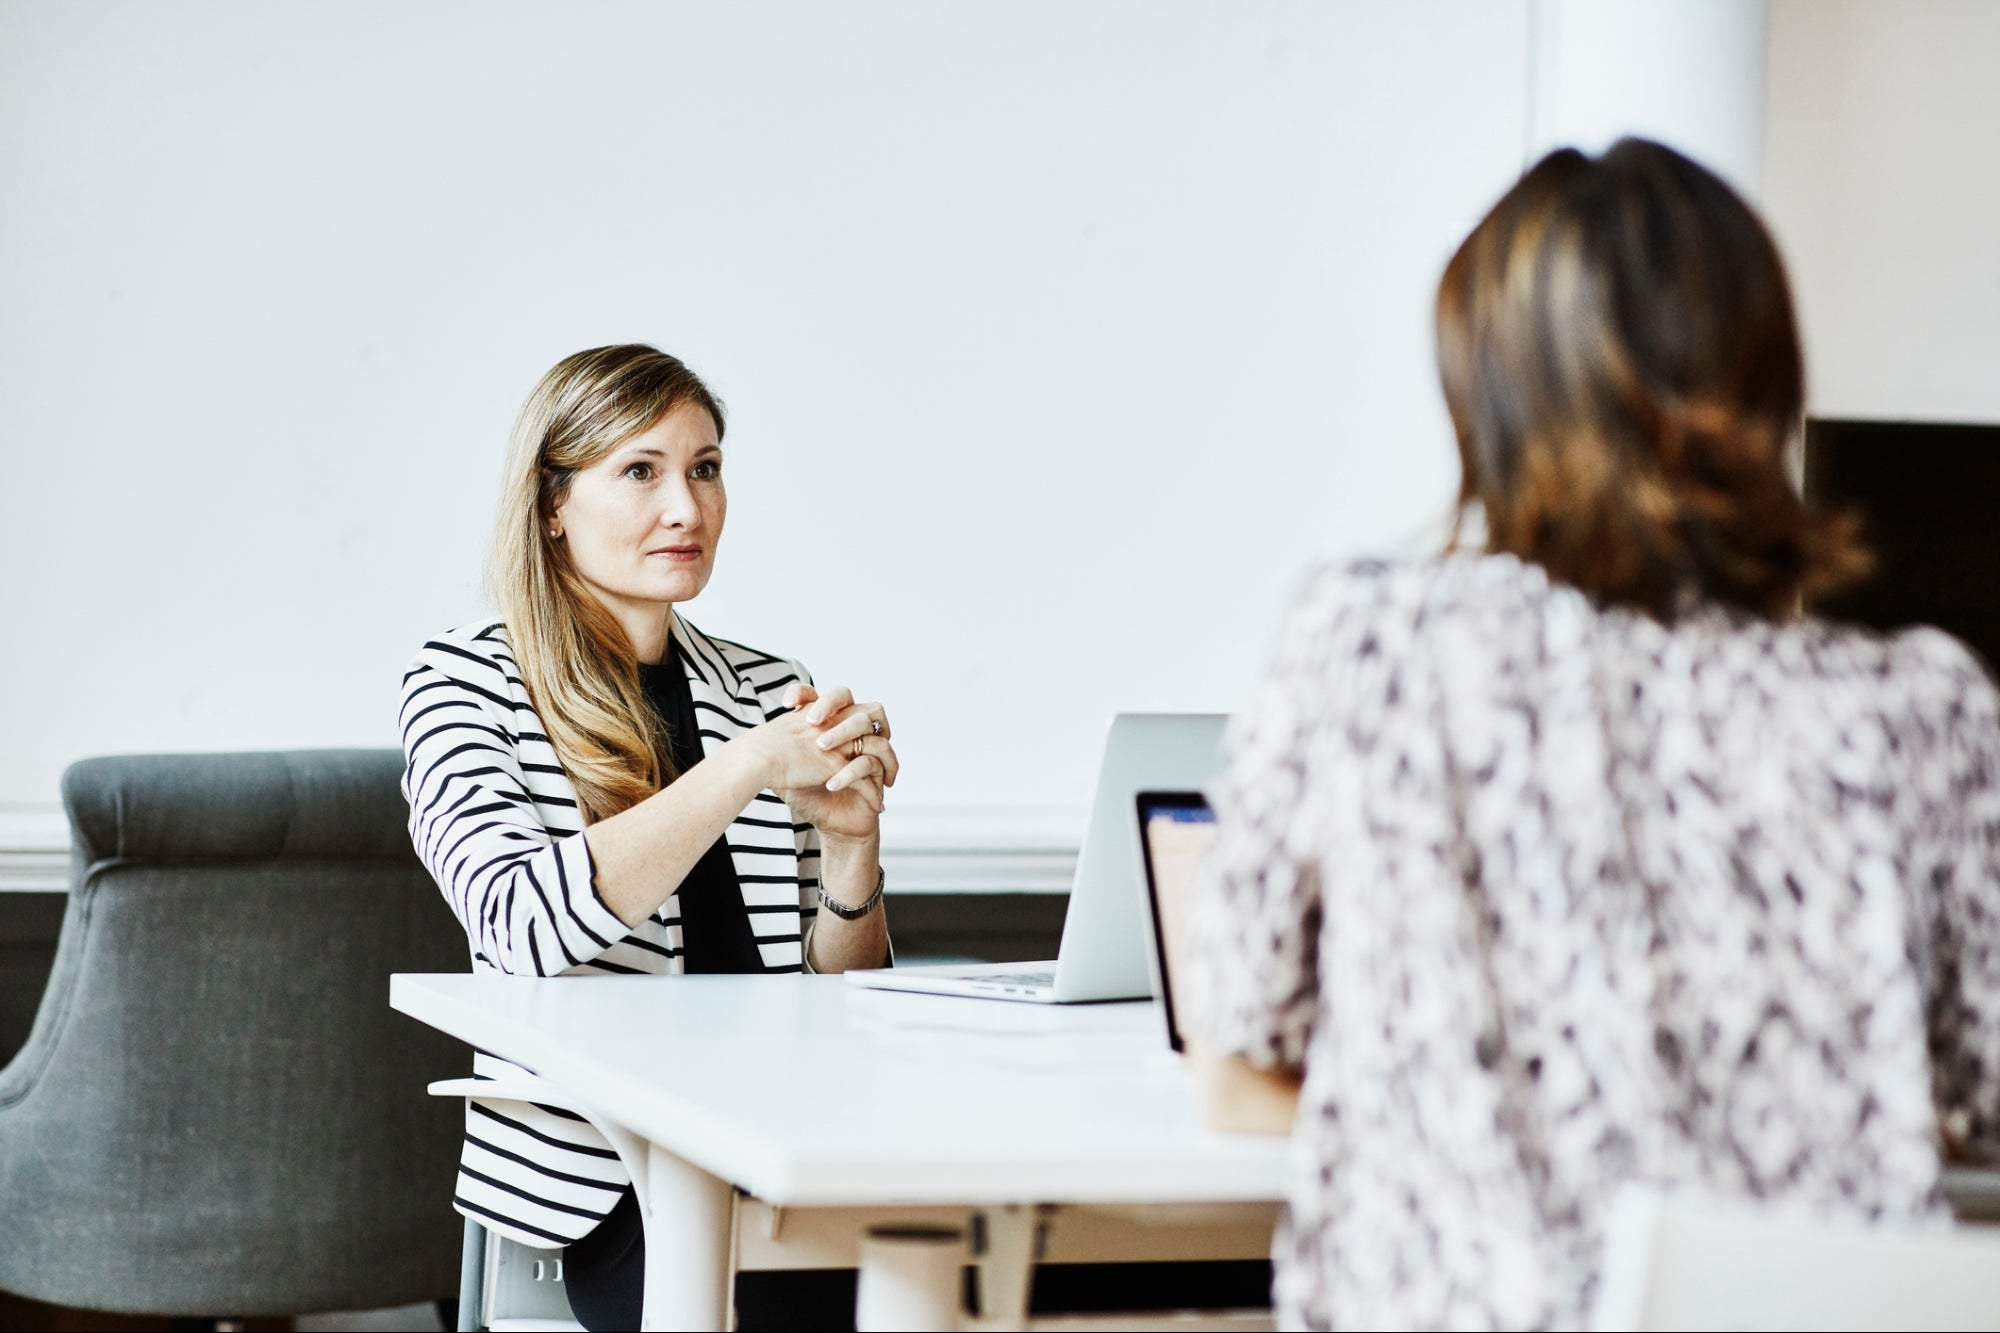 5 Things Investors Look for in Your Pitch